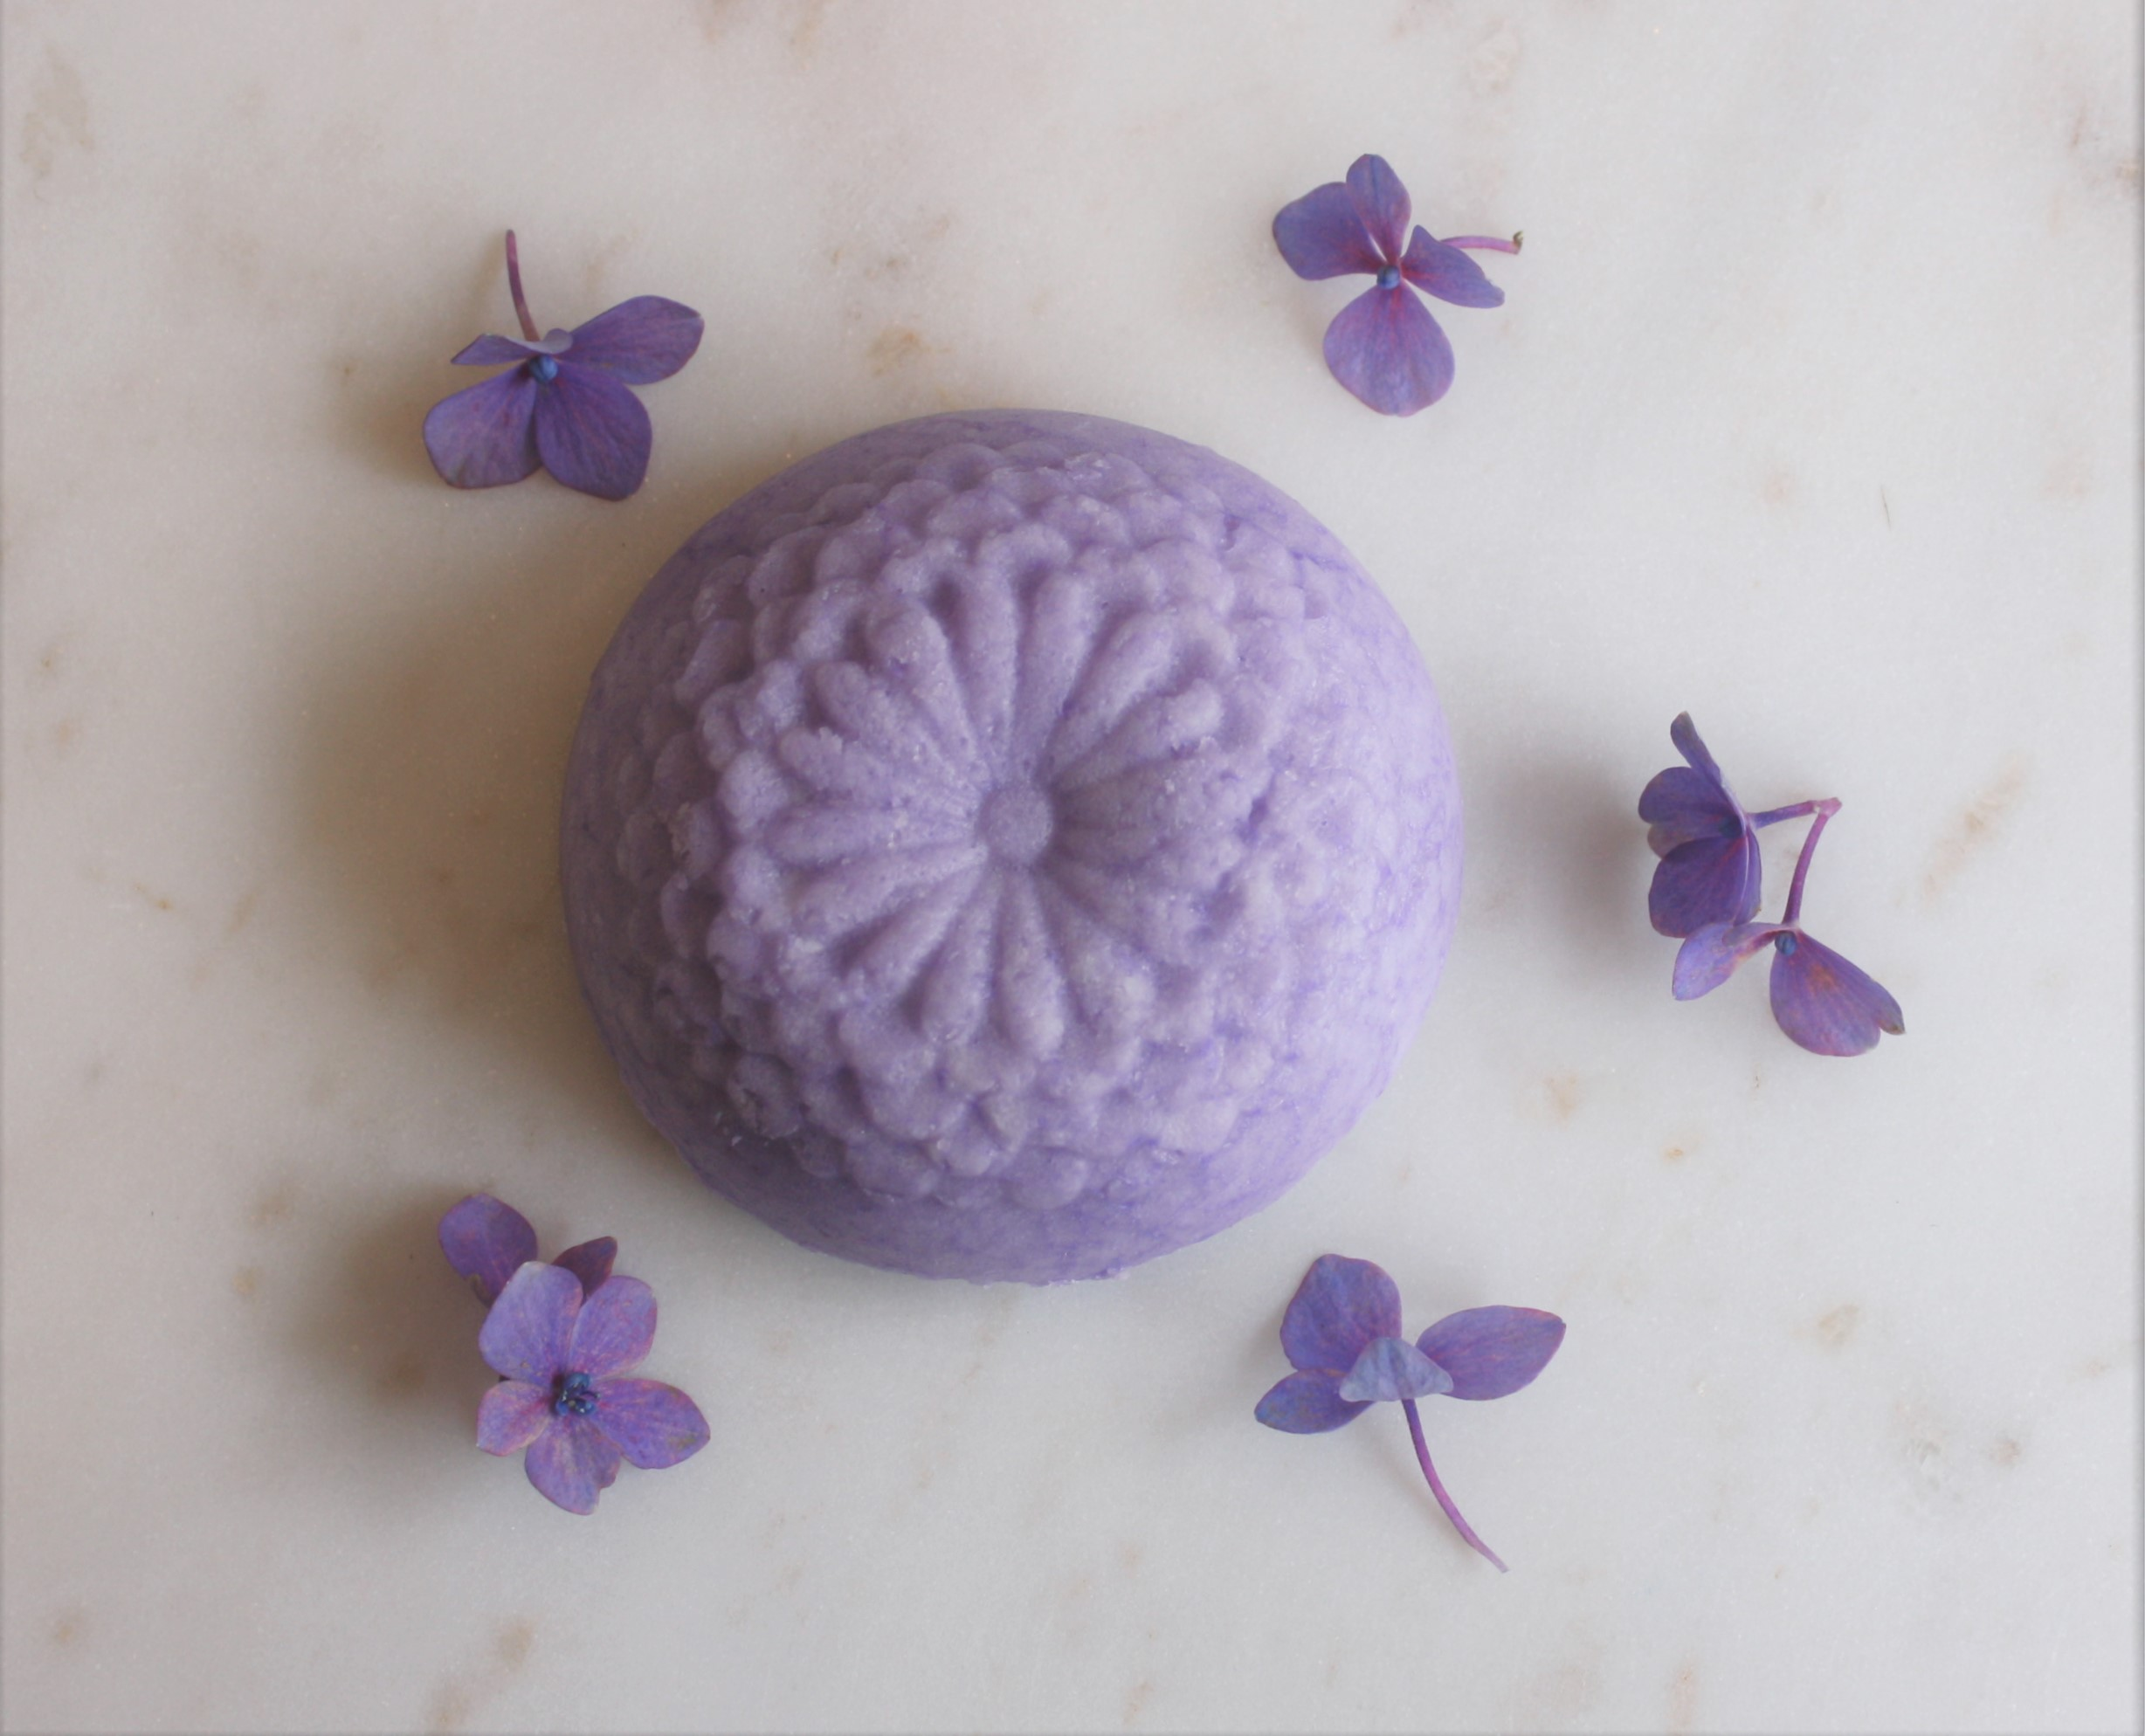 Shampoo bar - chrysanthemum